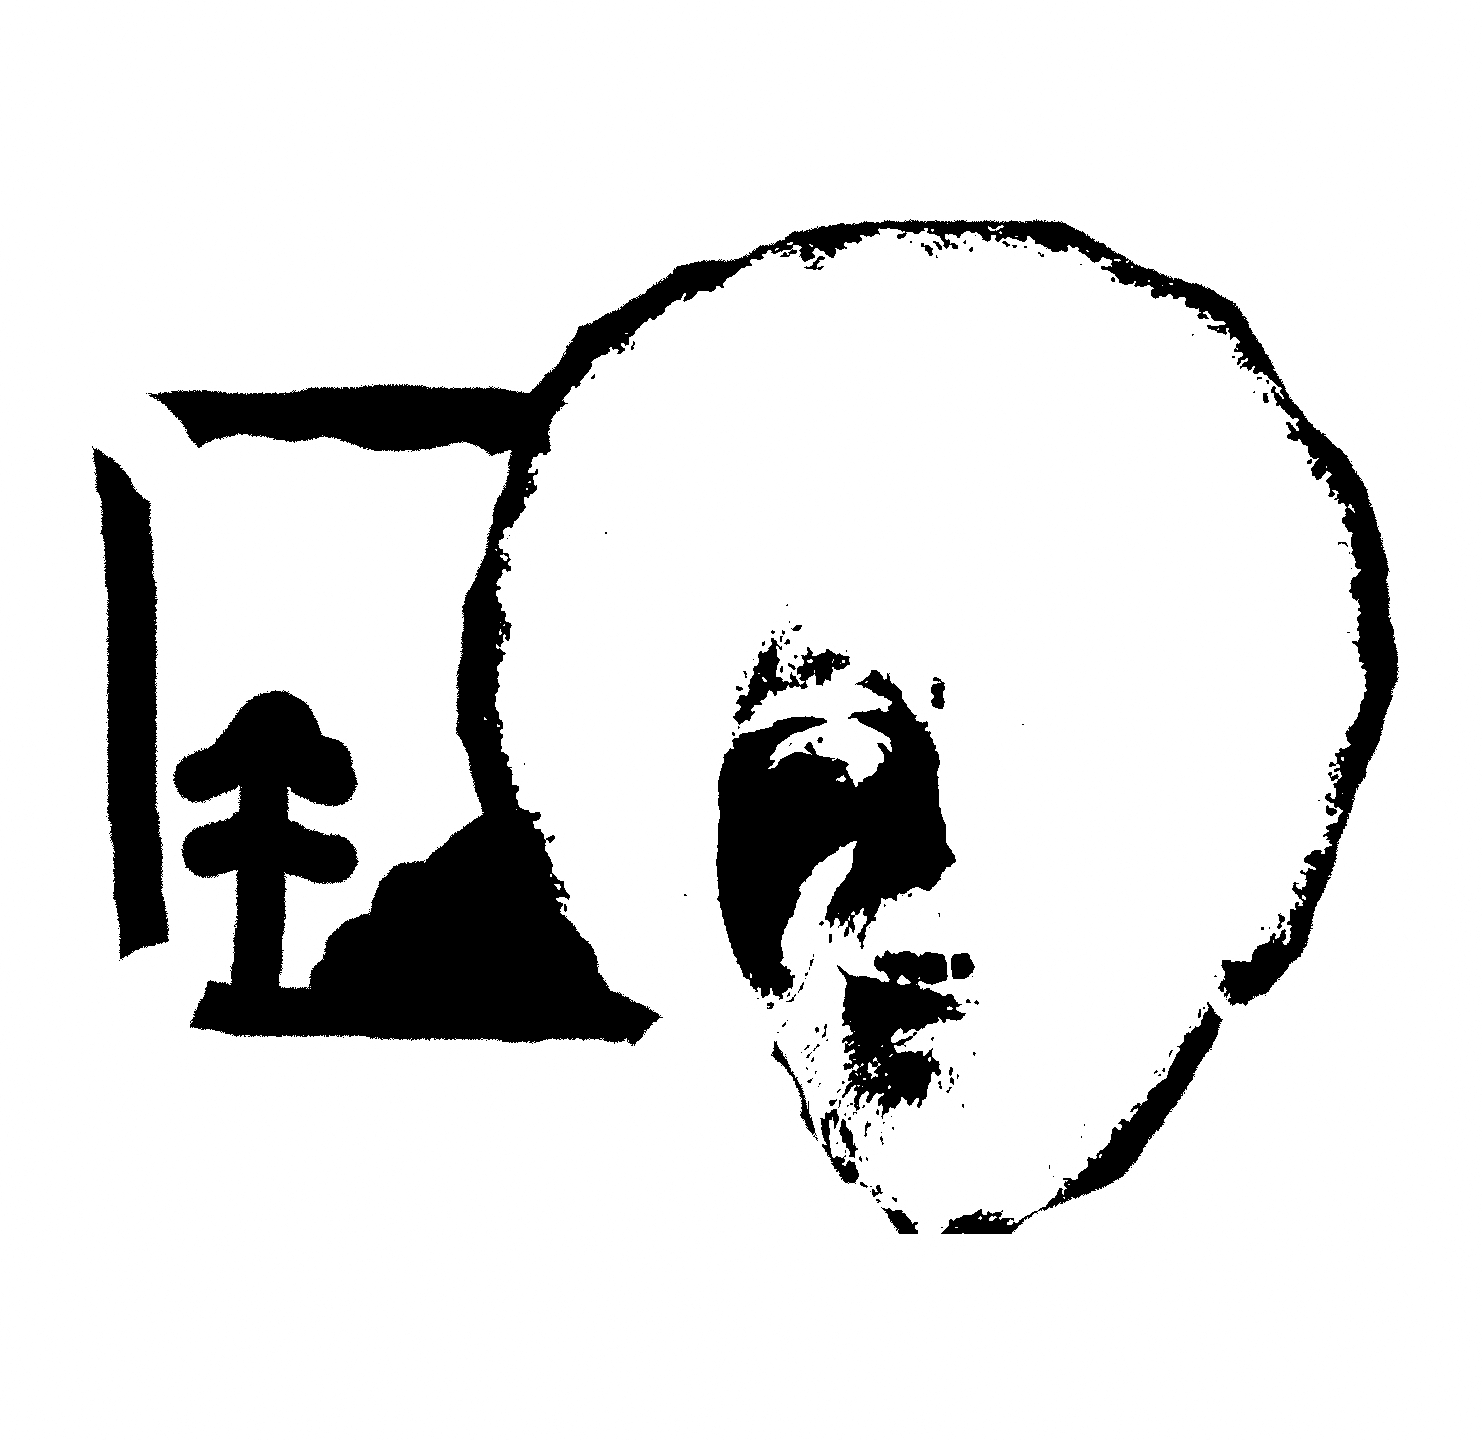 bob ross pumpkin template  How to Make the PBS Halloween Pumpkin of Your Nightmares ...